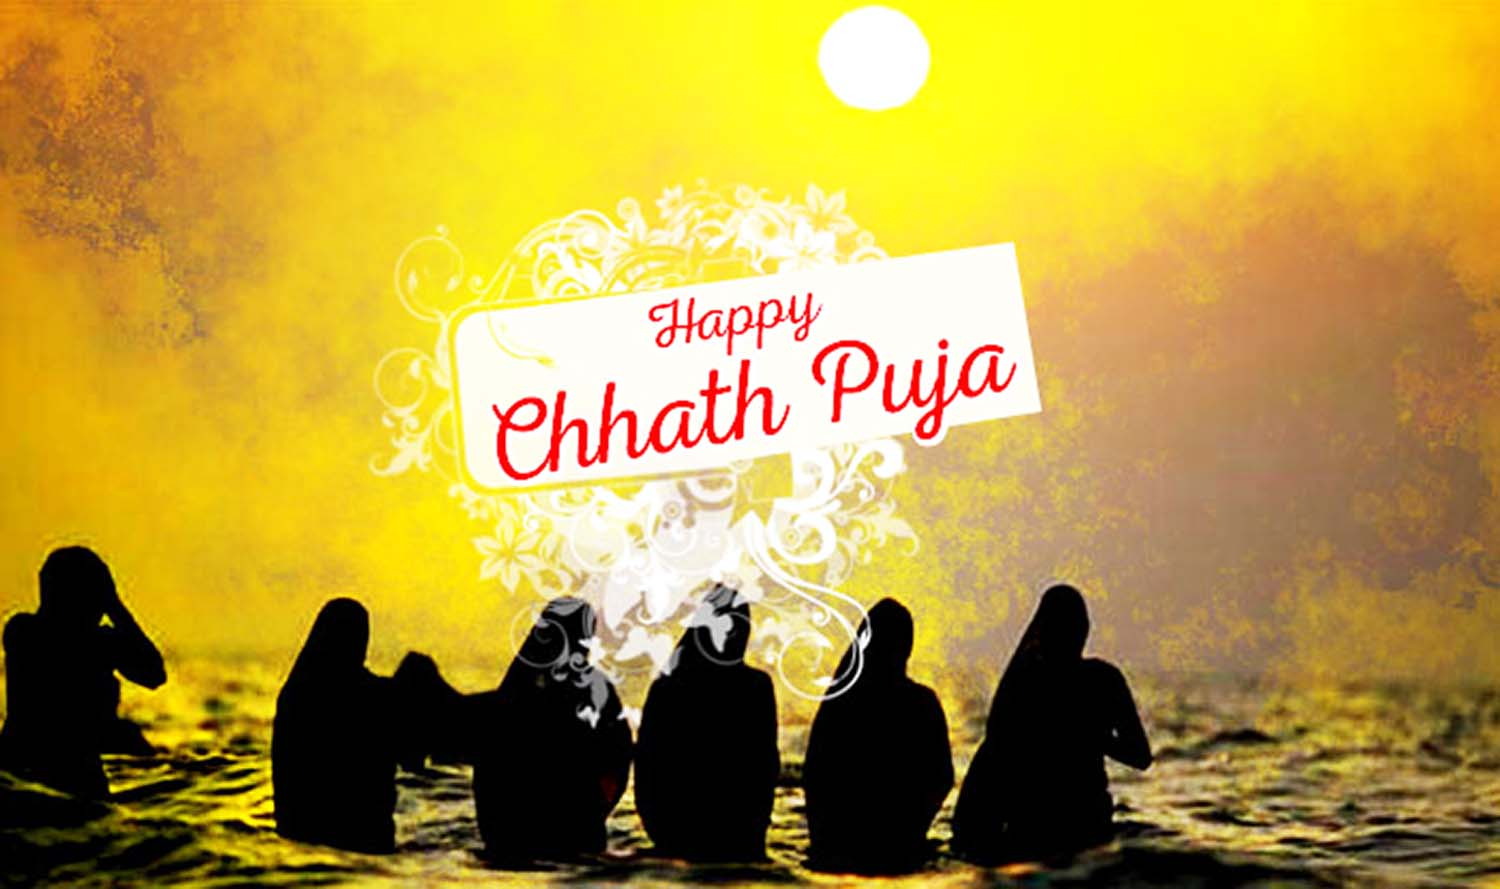 chhath puja hd photo